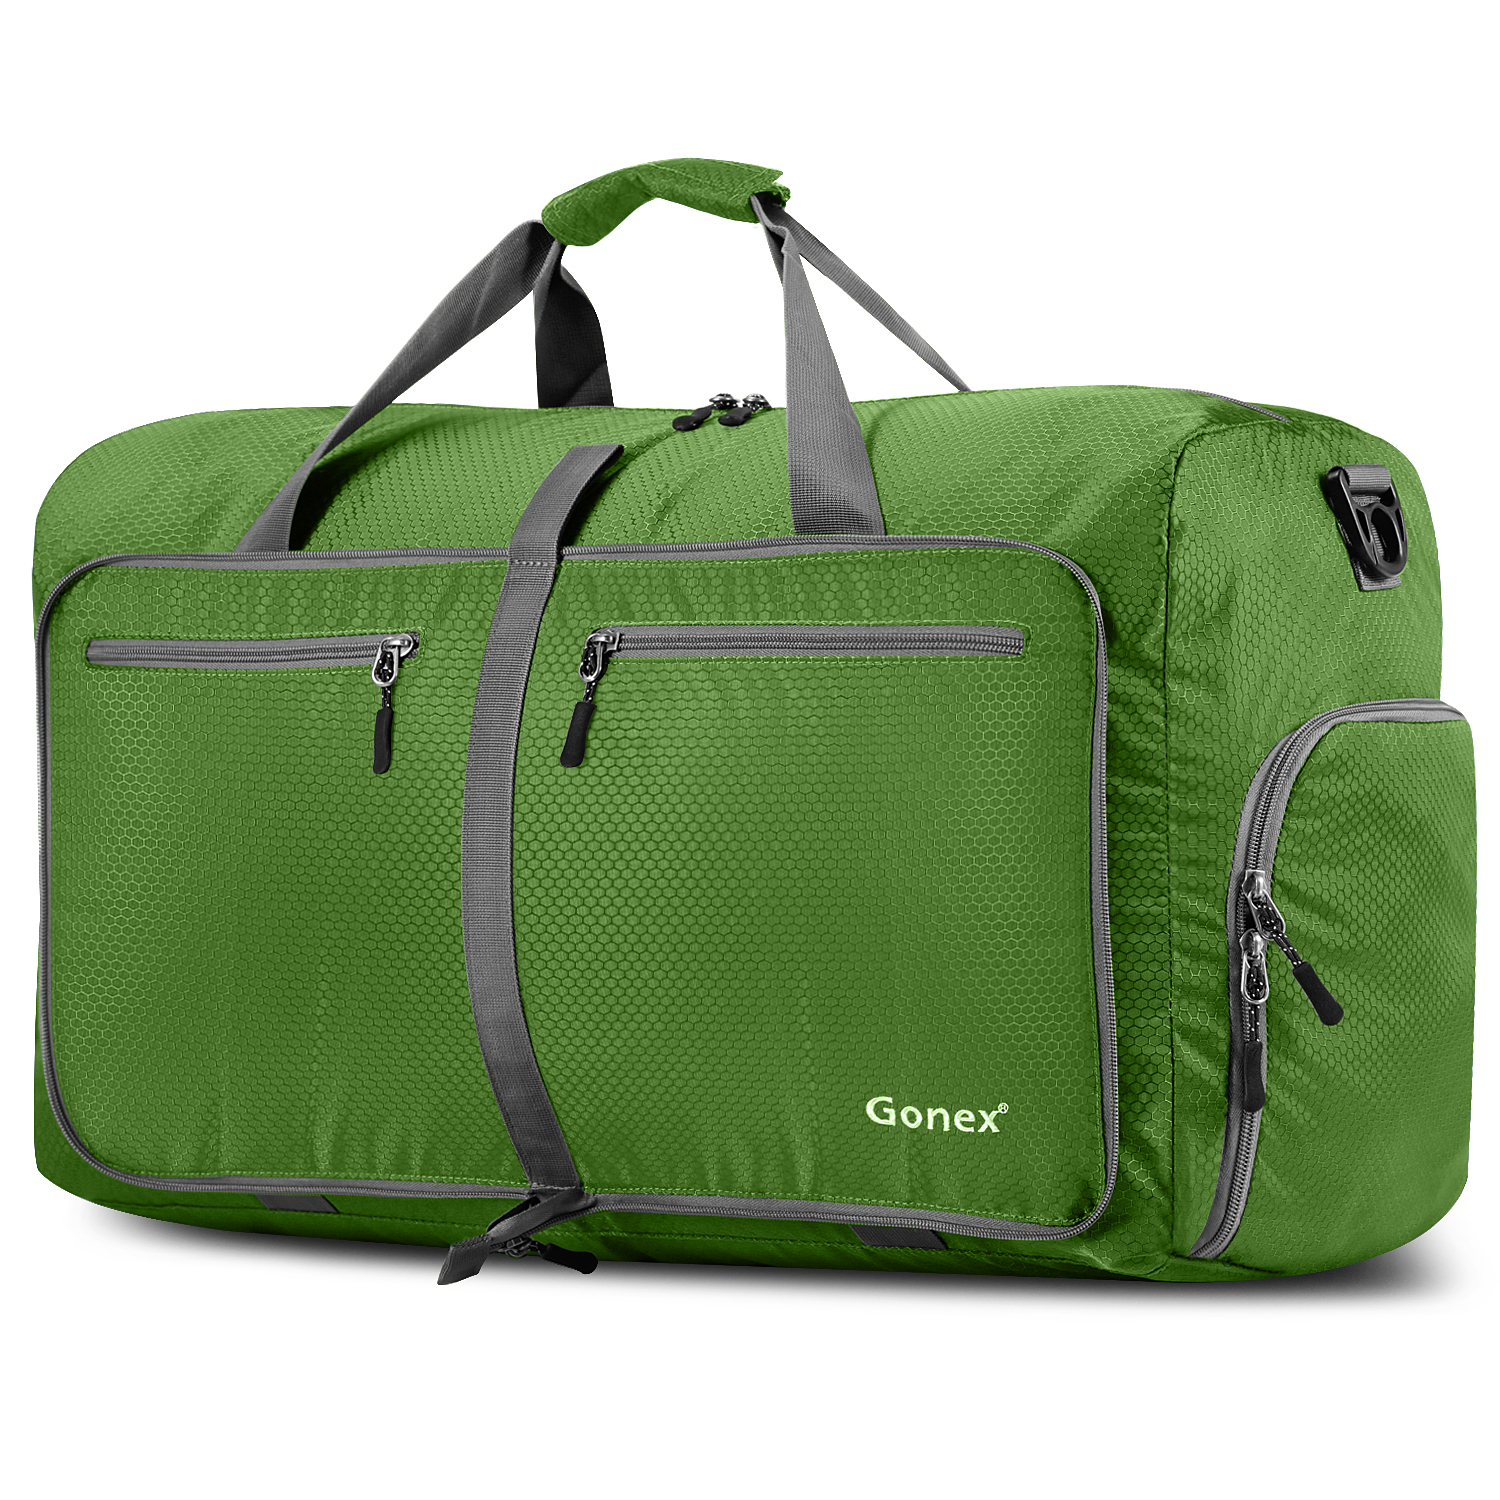 Lightweight Travel Trailer: 60L Travel Bags Luggage Duffel Bags Lightweight For Sports